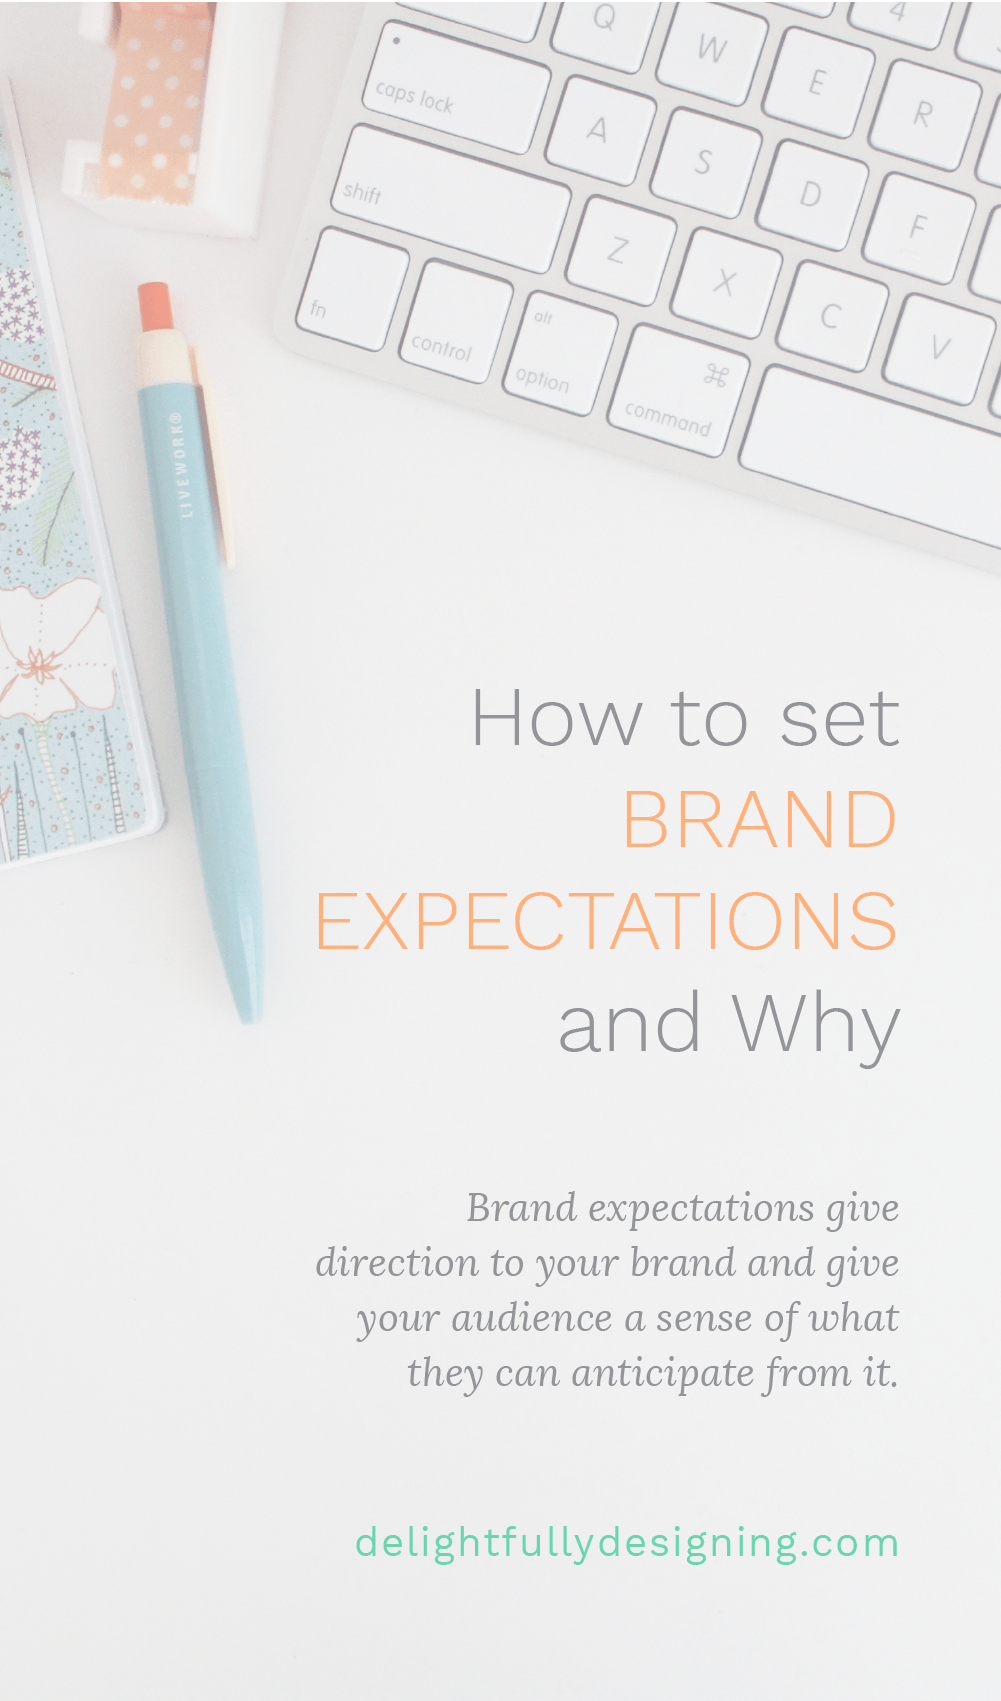 Brand expectations give direction to your brand and give your audience a sense of what they can anticipate from it.